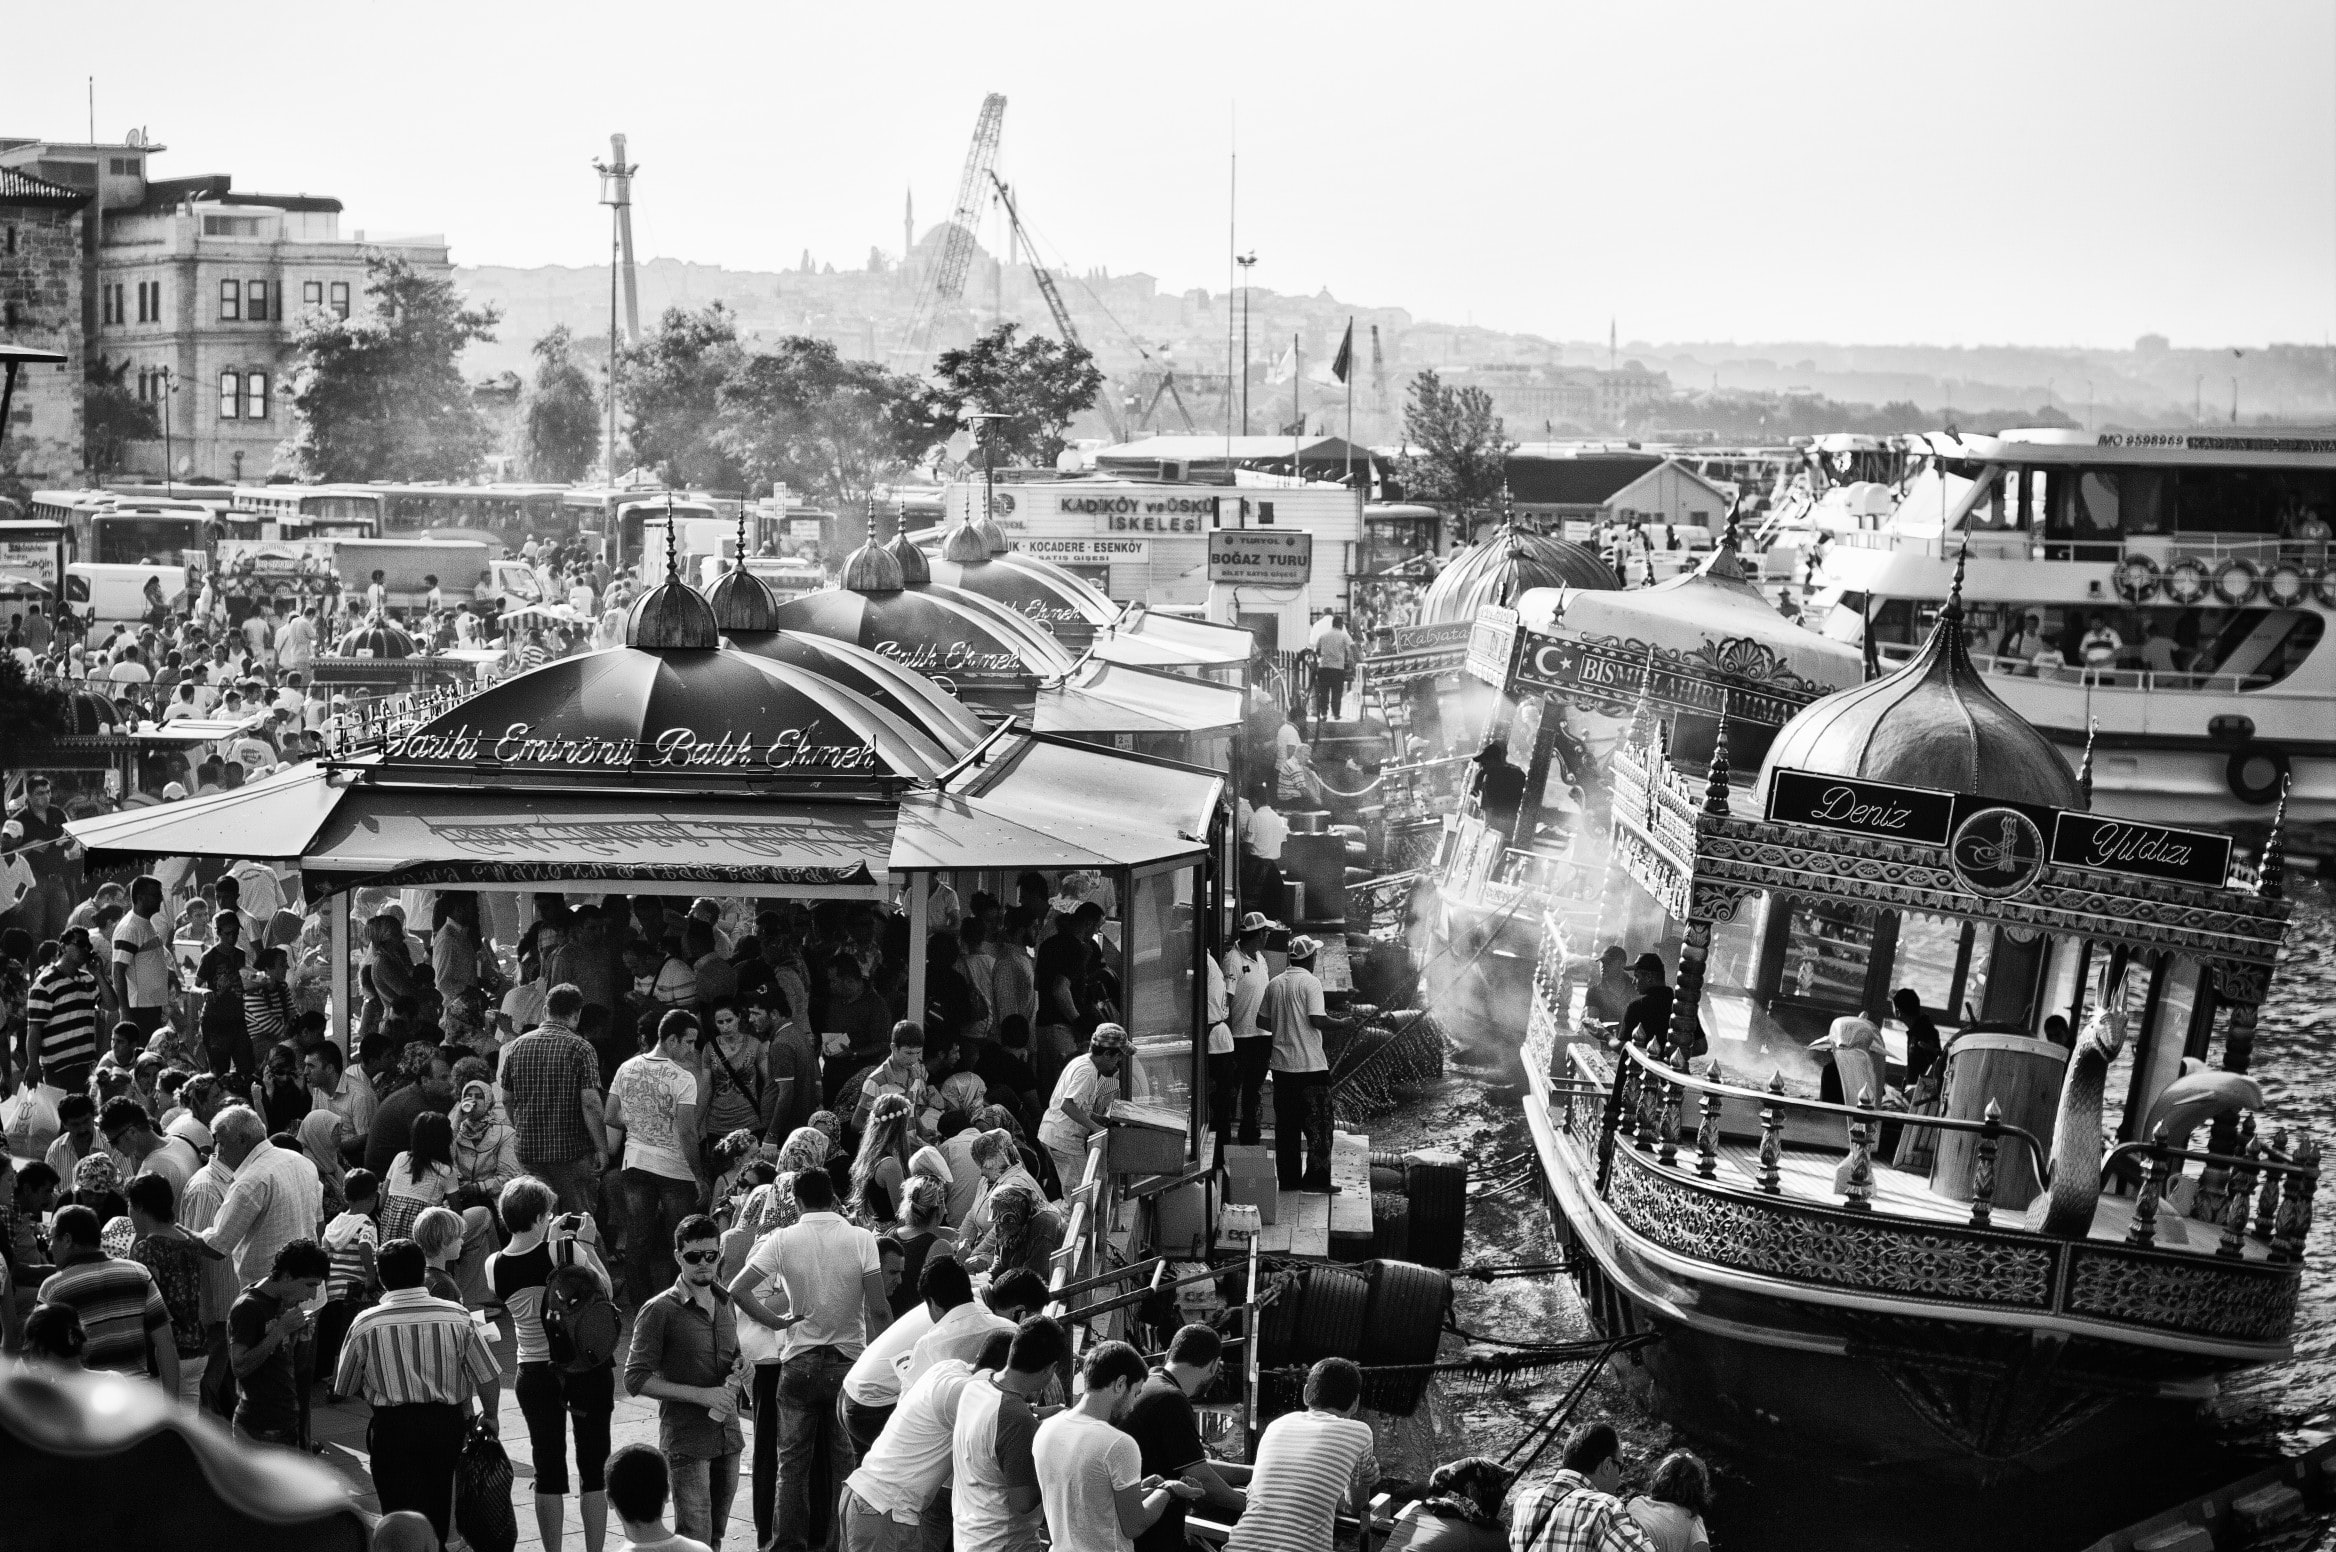 grayscale photo of people riding boats